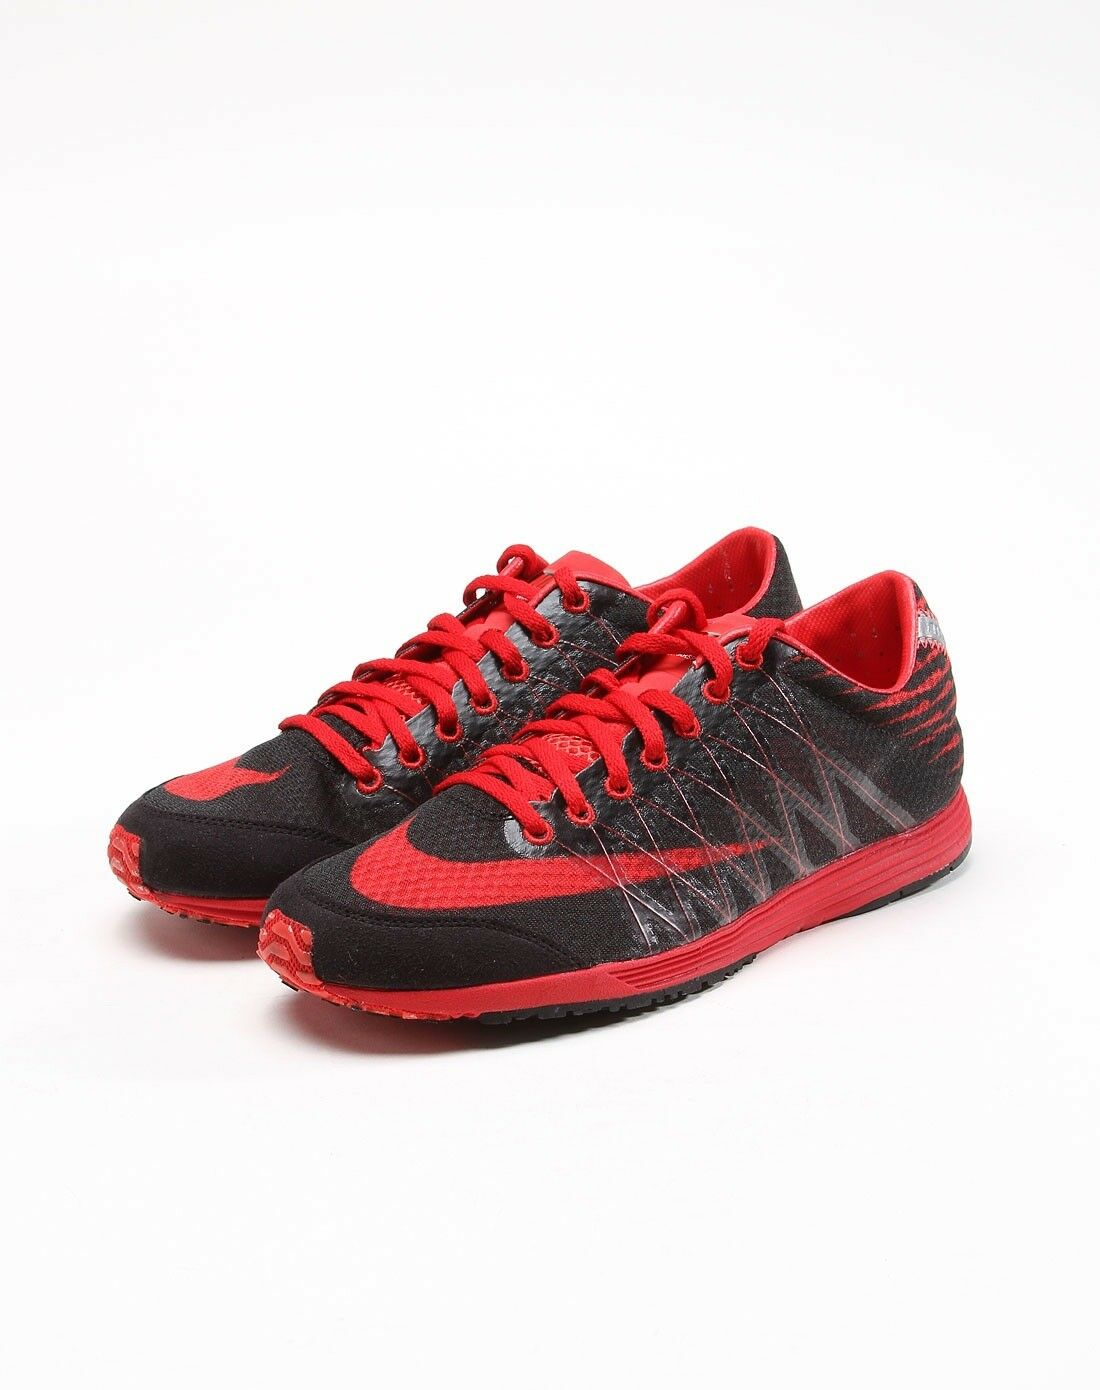 Nike Lunarspider R 3 Men Running shoes Black Red Black 524963-060 Men size 11.5